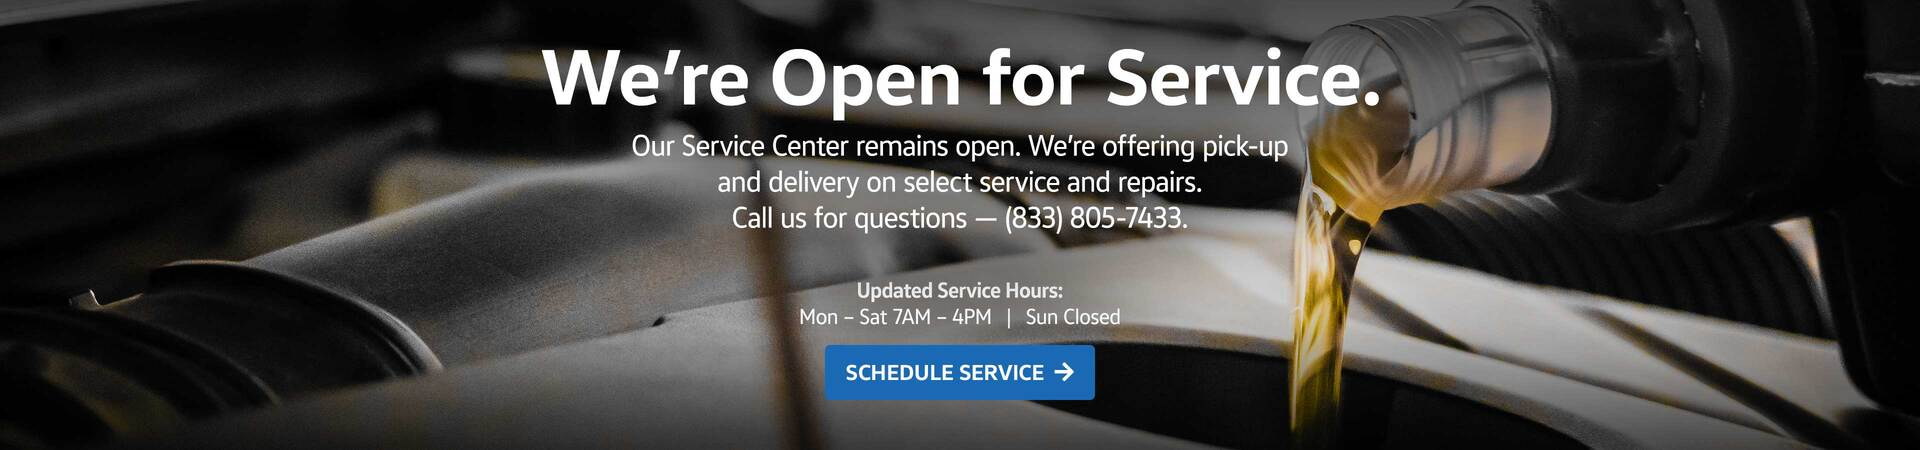 We're Open for Service